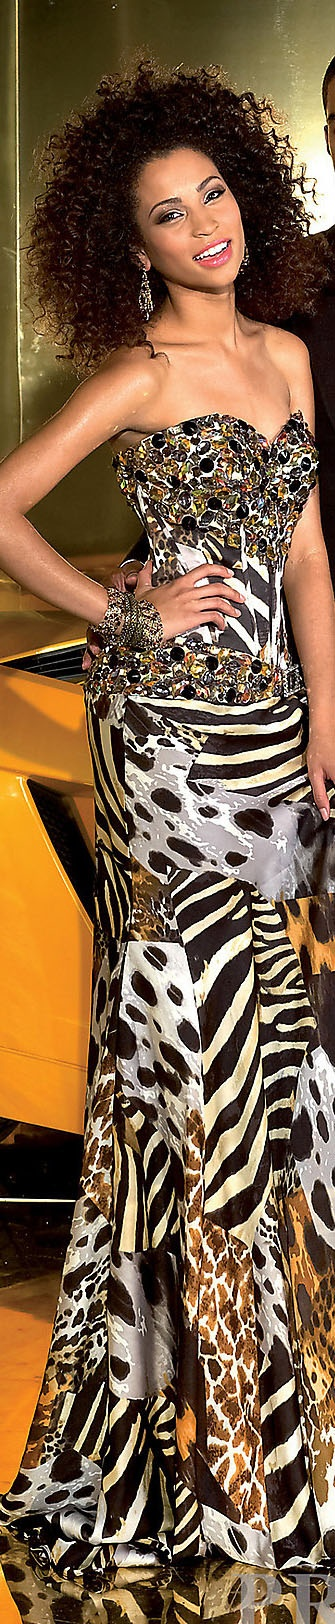 exquisite mixed animal print strapless gown. Stunning. Form fitting.